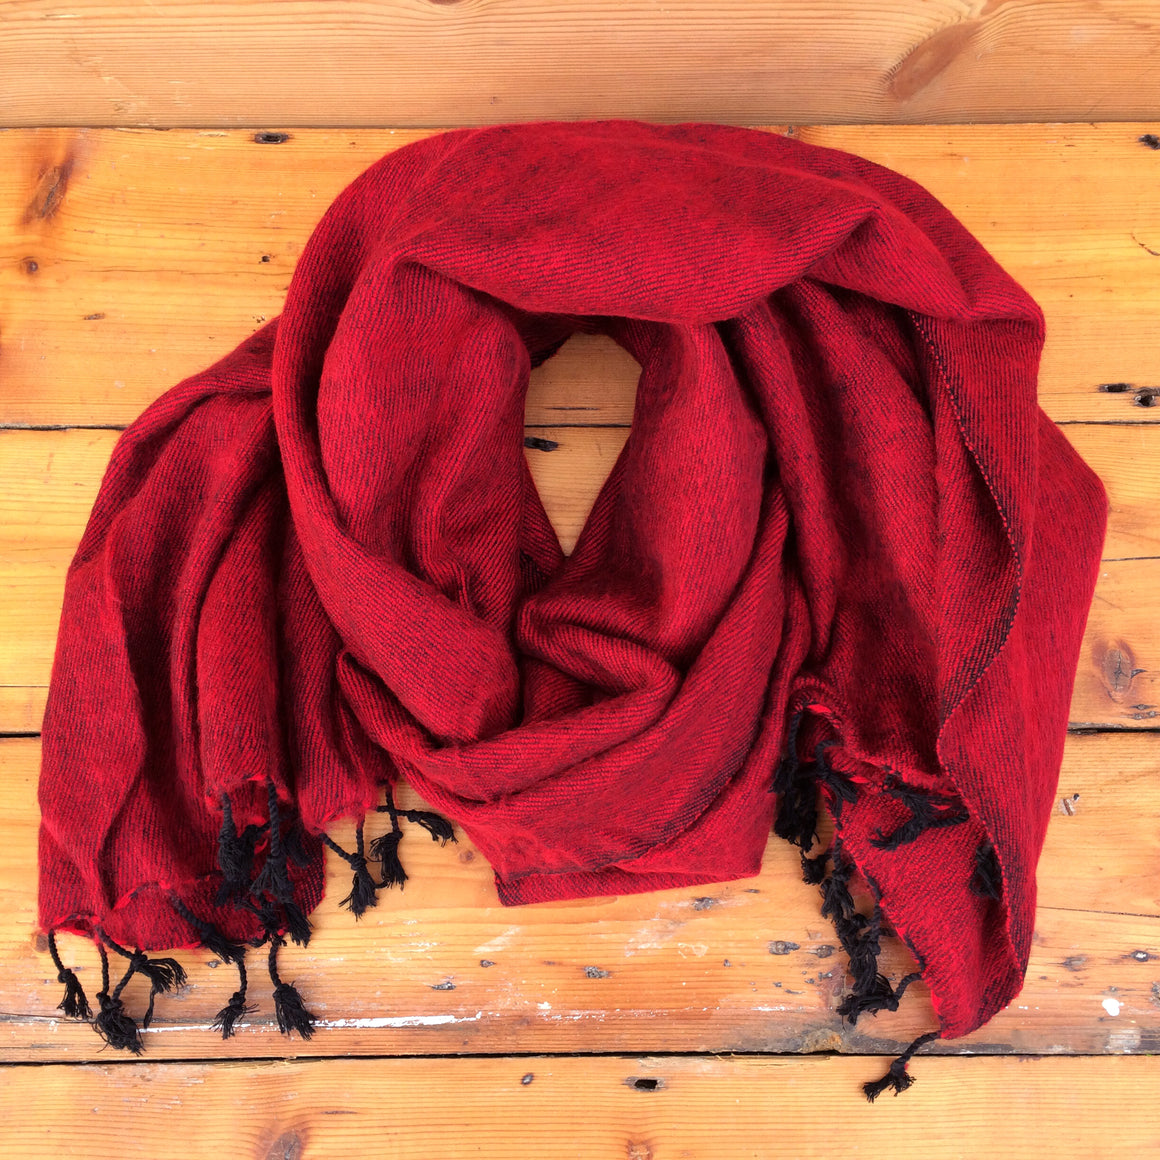 Handmade Nepalese 'Yak Wool' Shawl Burning Charcoal Red Black Oversized Scarf / Yoga Blanket - worn as scarf